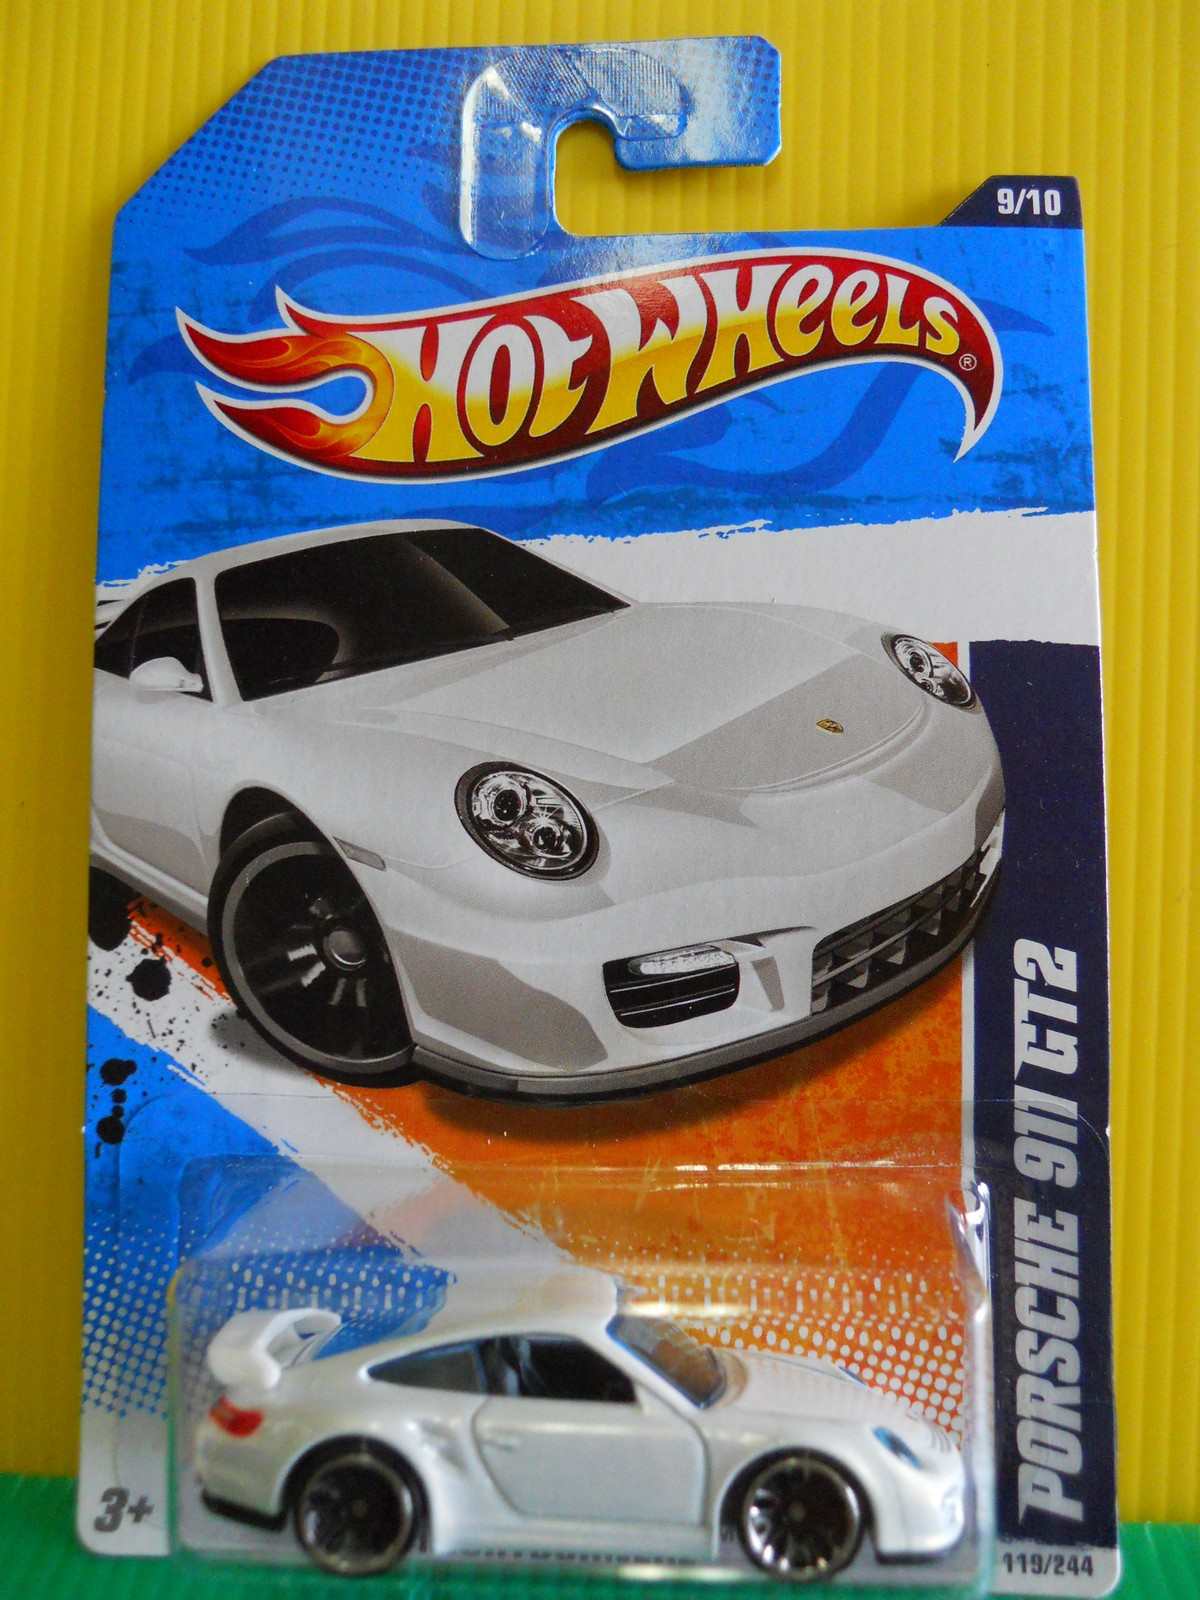 dexters diecasts dexdc hot wheels 2011 119 porsche 911 gt2 white. Black Bedroom Furniture Sets. Home Design Ideas